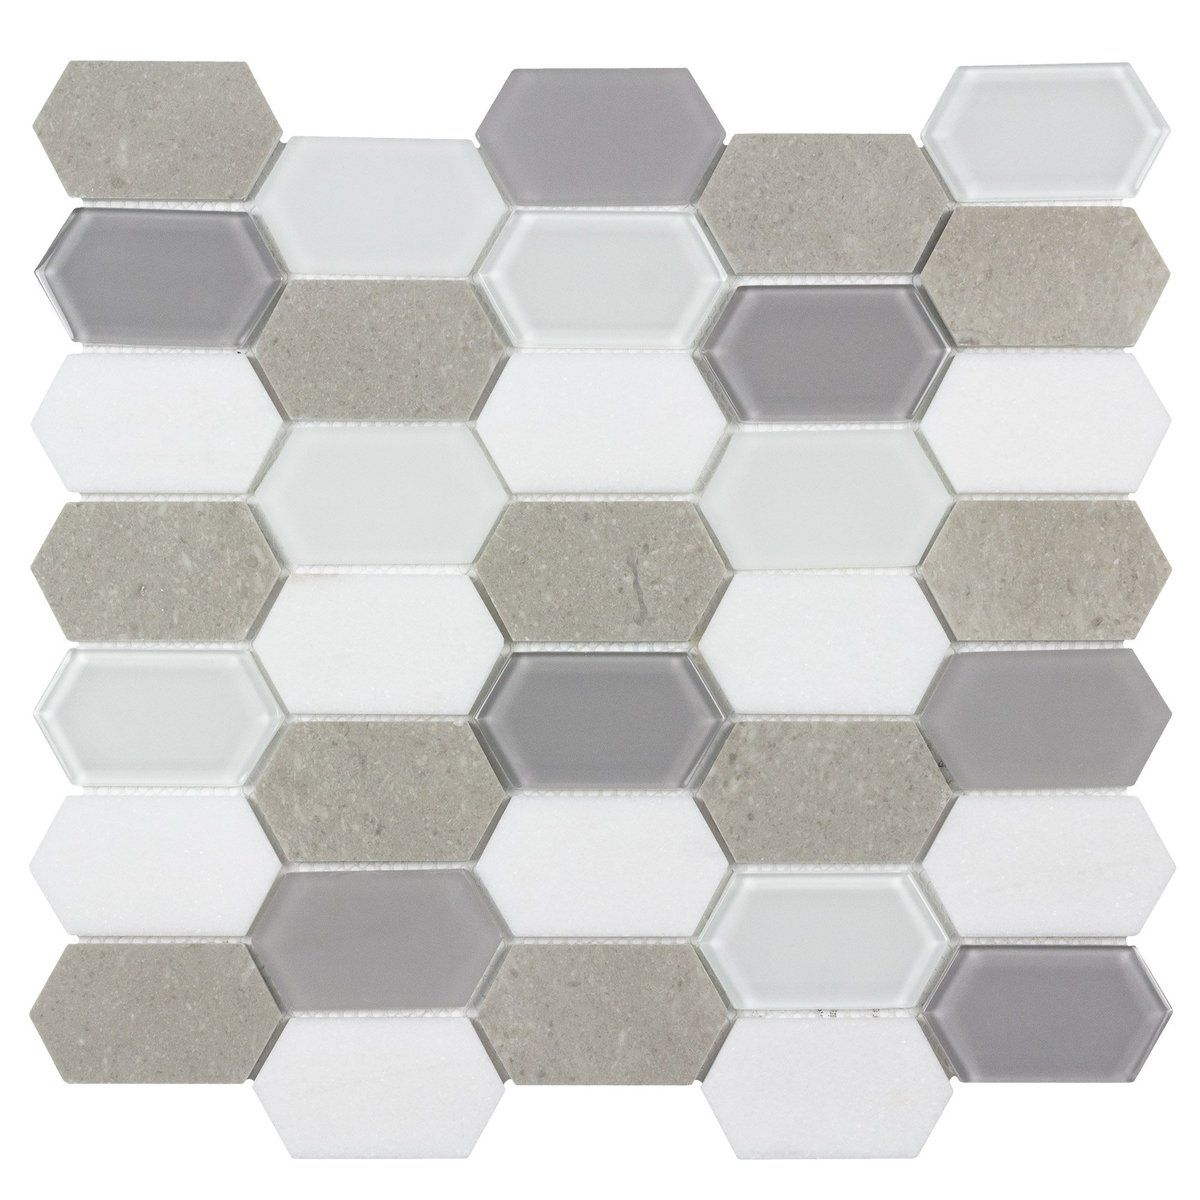 Mto0127 Hexagon White Cinderella Gray Glossy Thassos Marble Glass